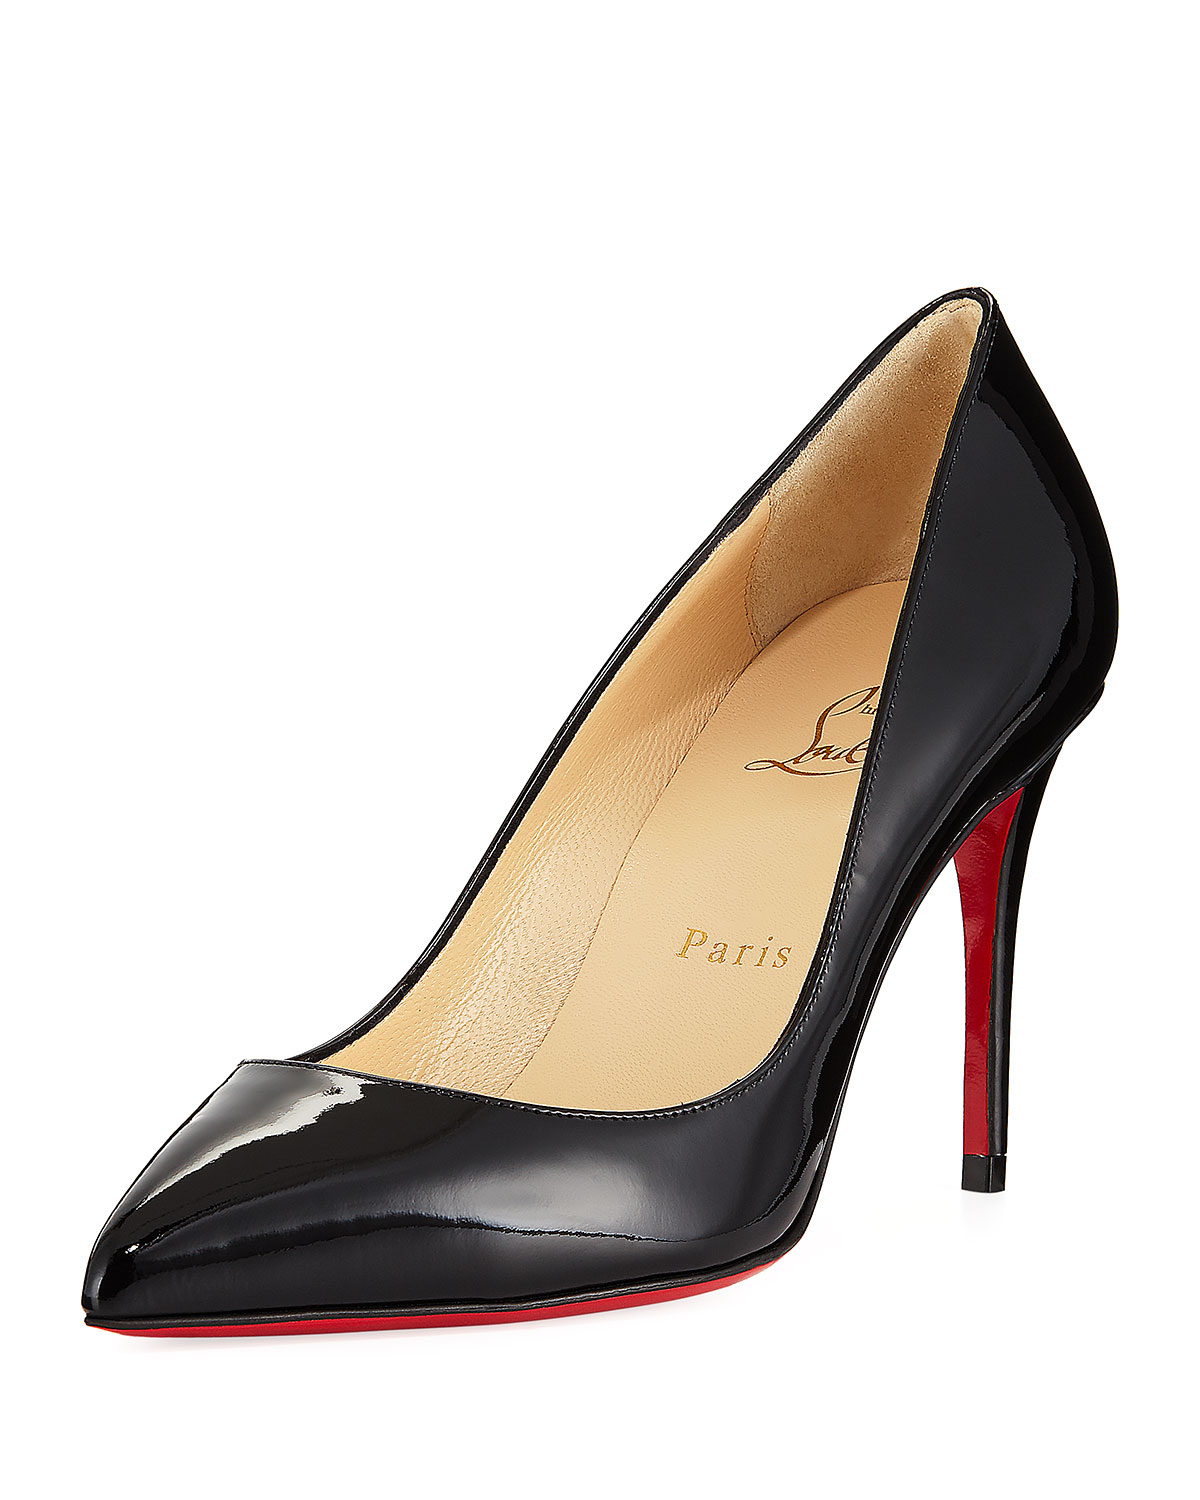 e8c59efbe2b2 Christian Louboutin Pigalle Follies 85mm Patent Red Sole Pump ...